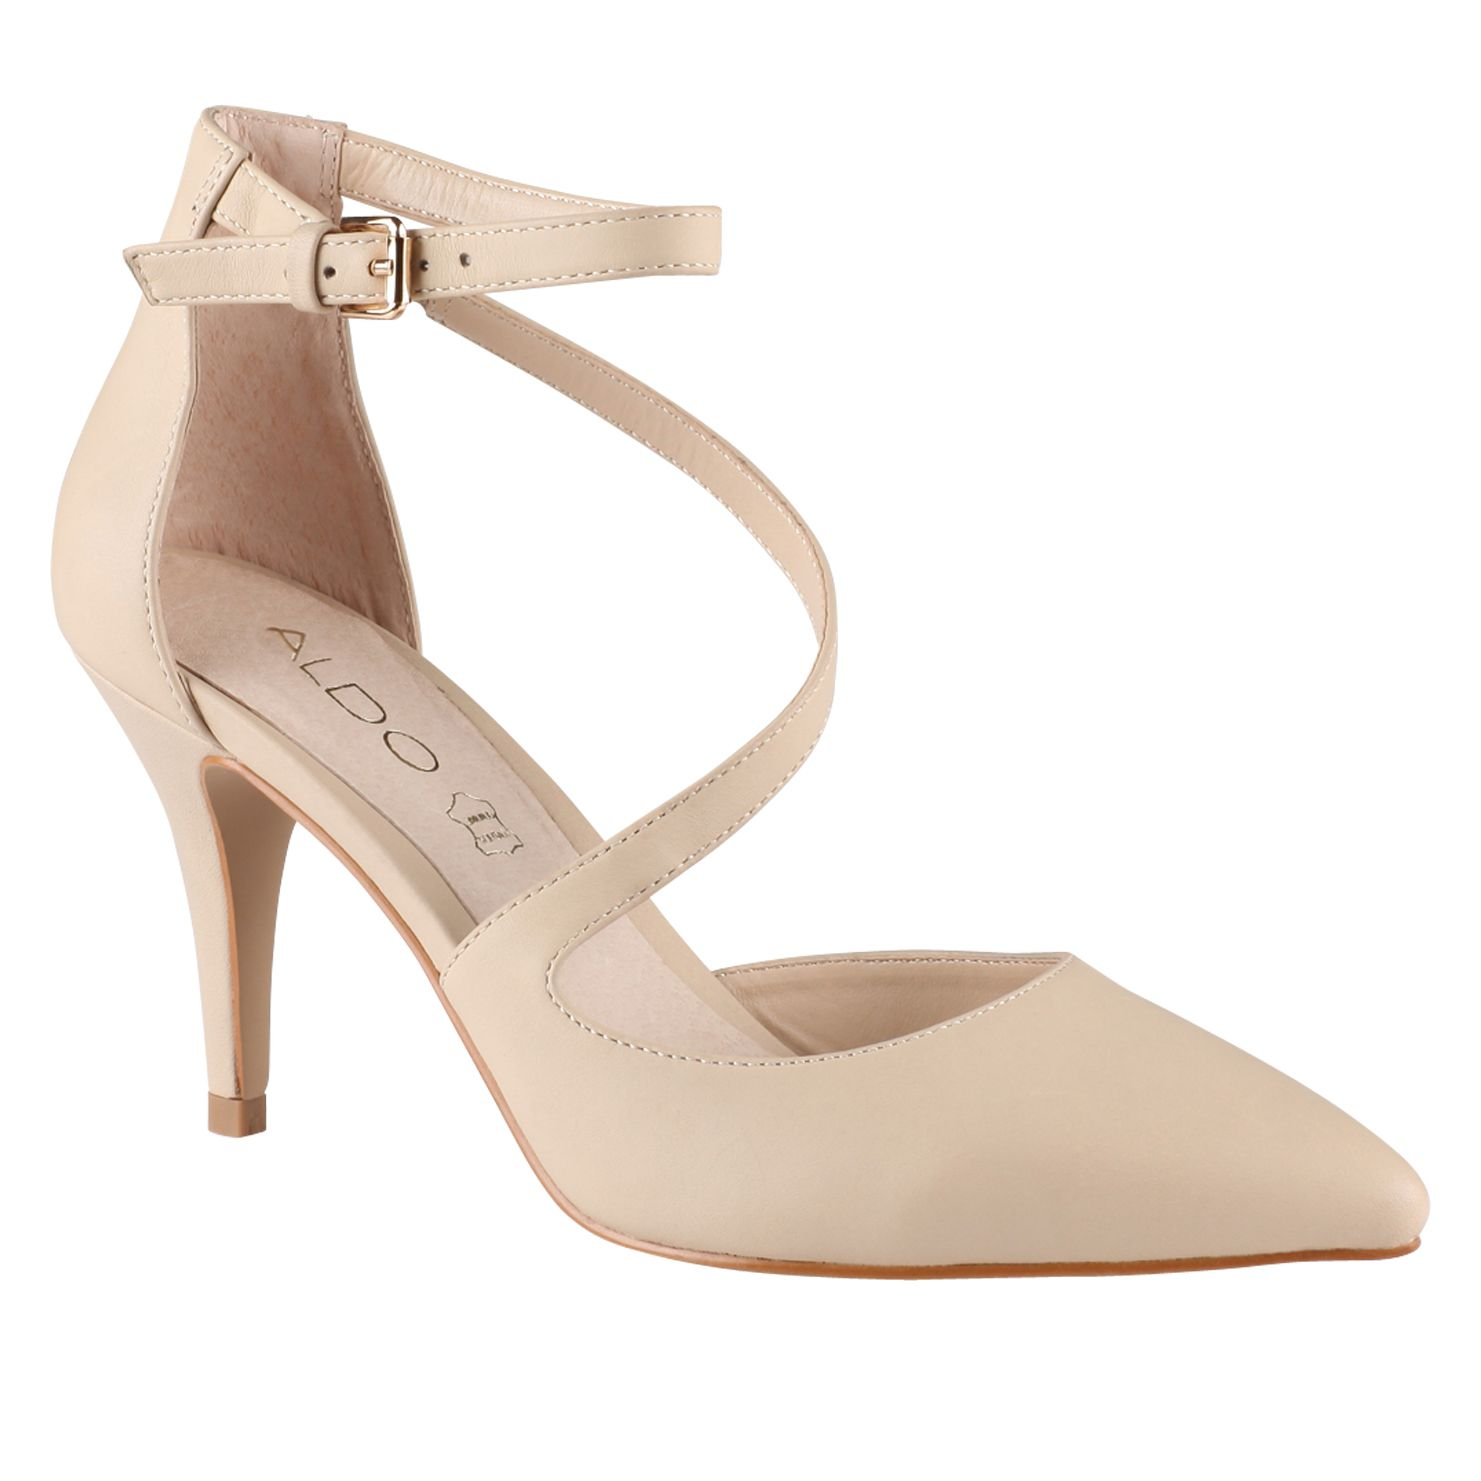 Ulenalle almond toe court shoes